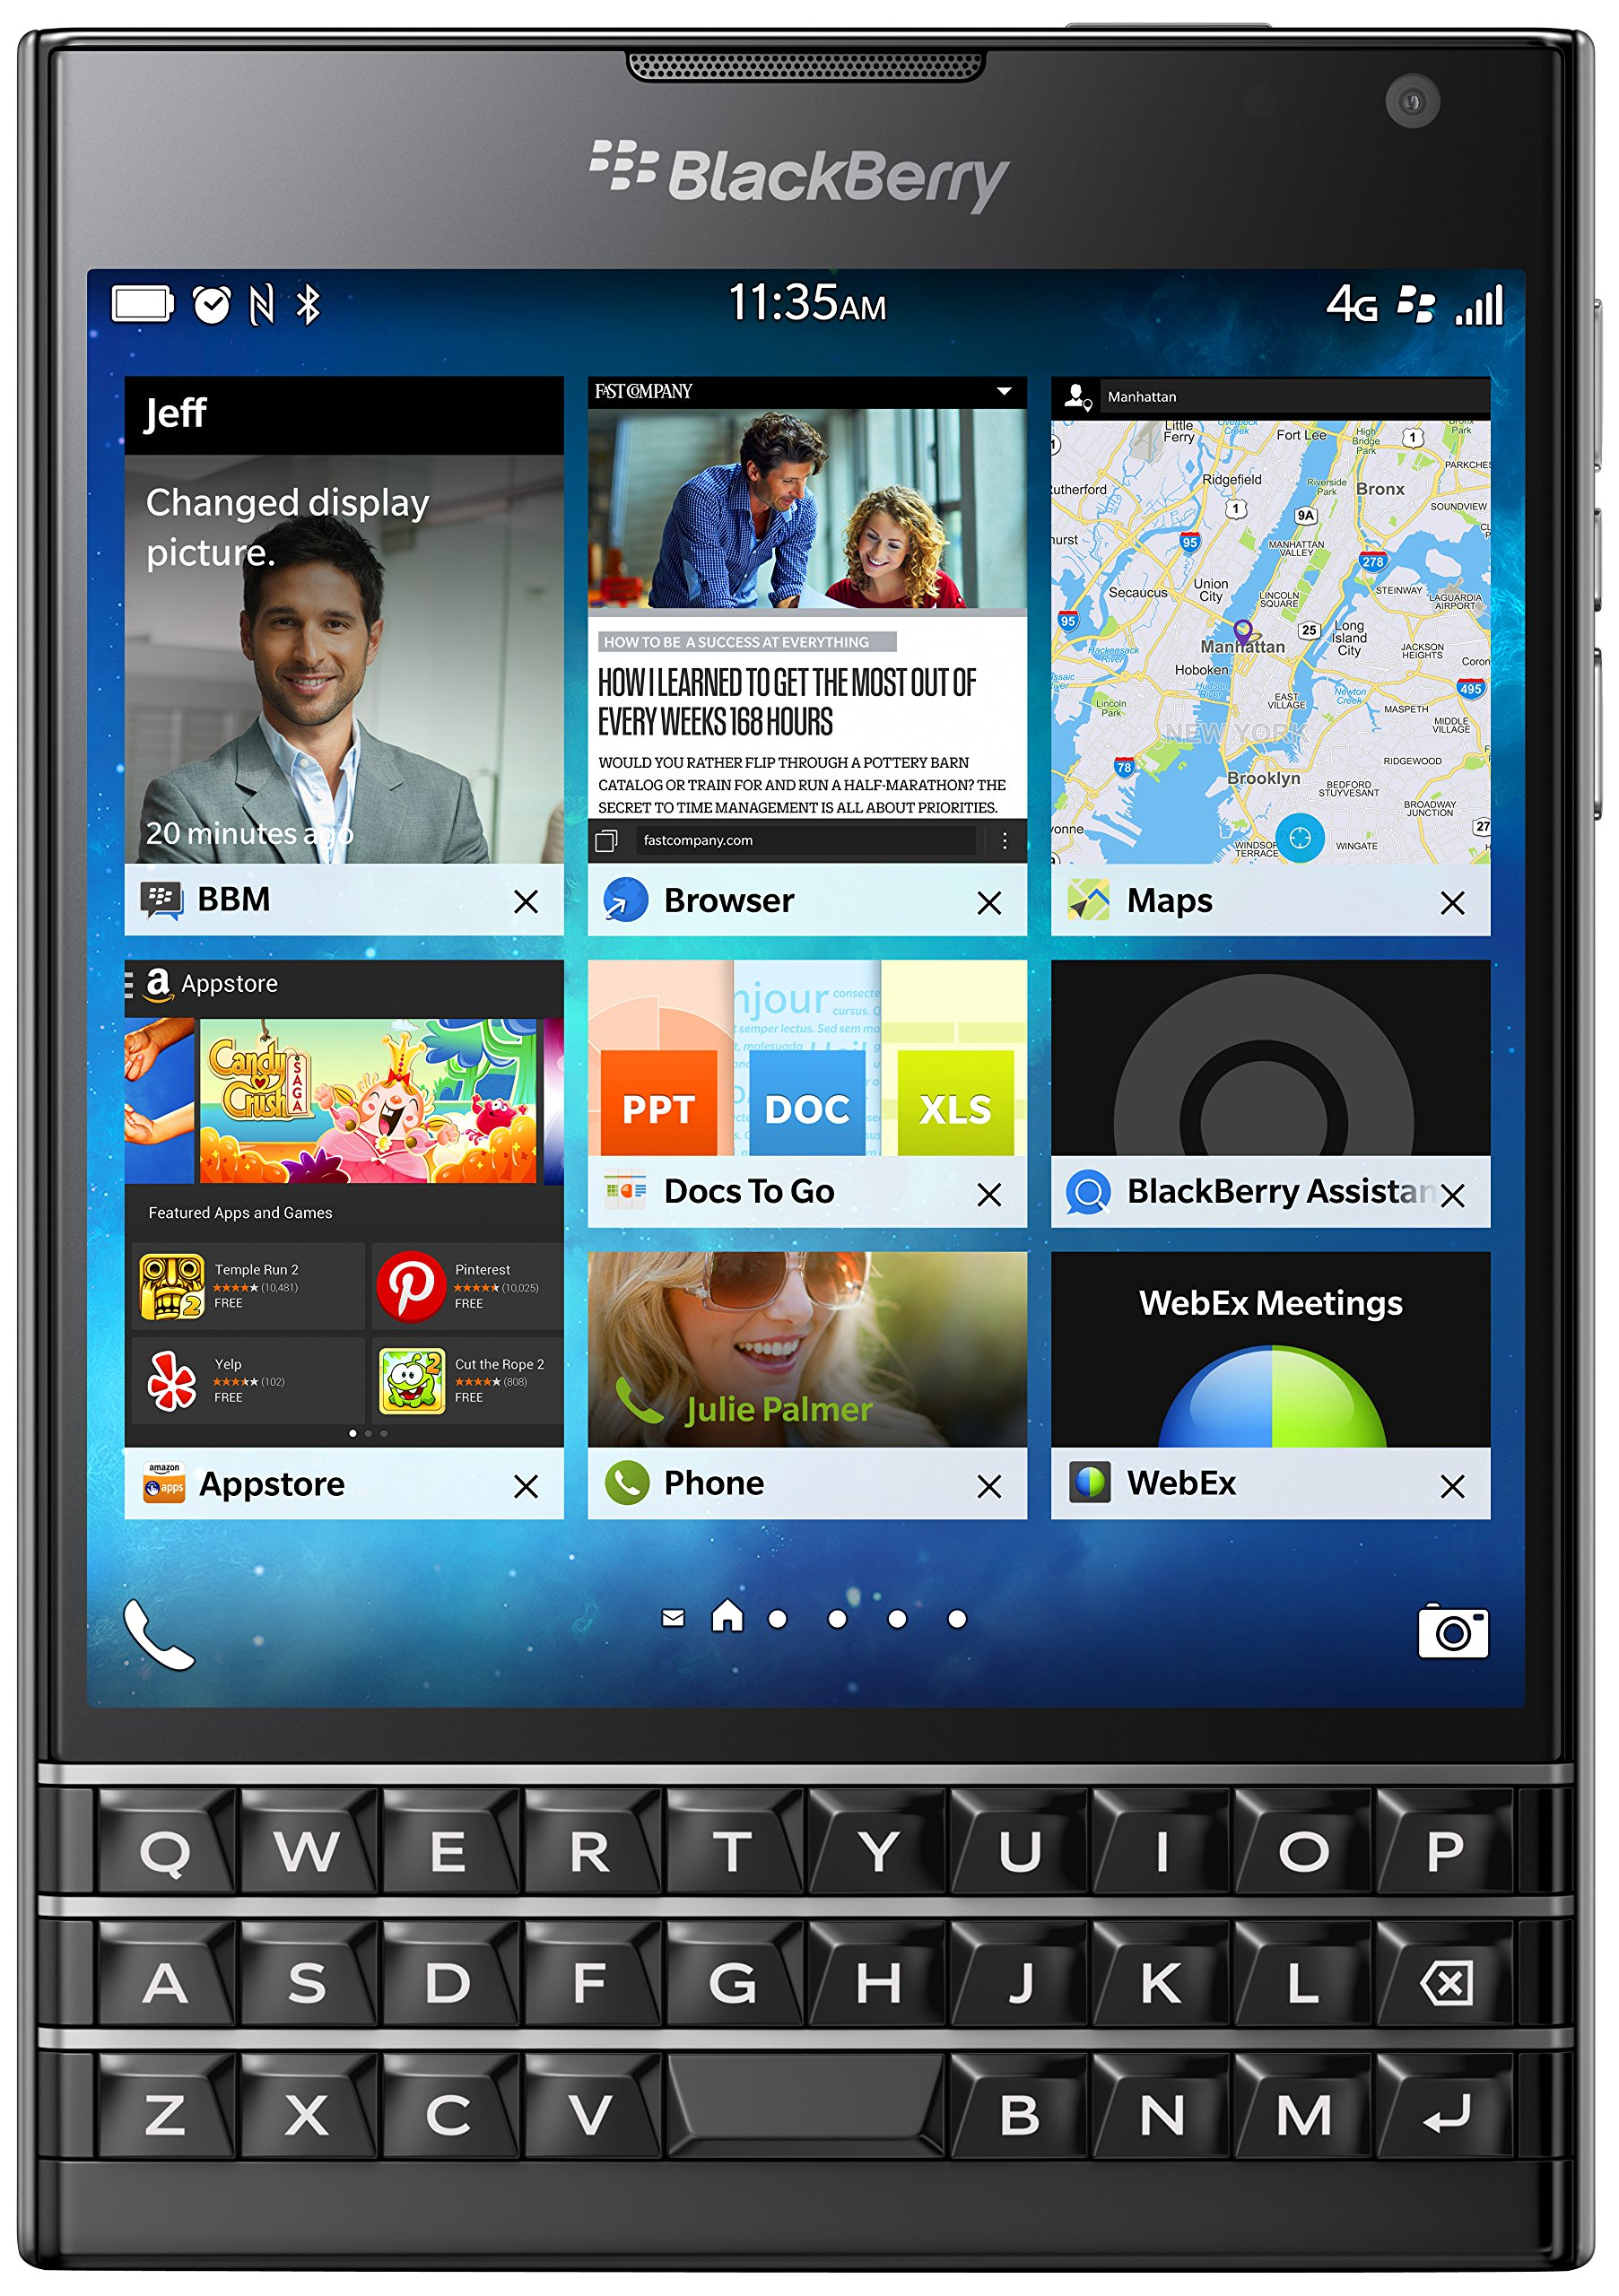 BlackBerry Passport 32GB Factory Unlocked (SQW100-1) GSM 4G LTE Smartphone - Black by Blackberry